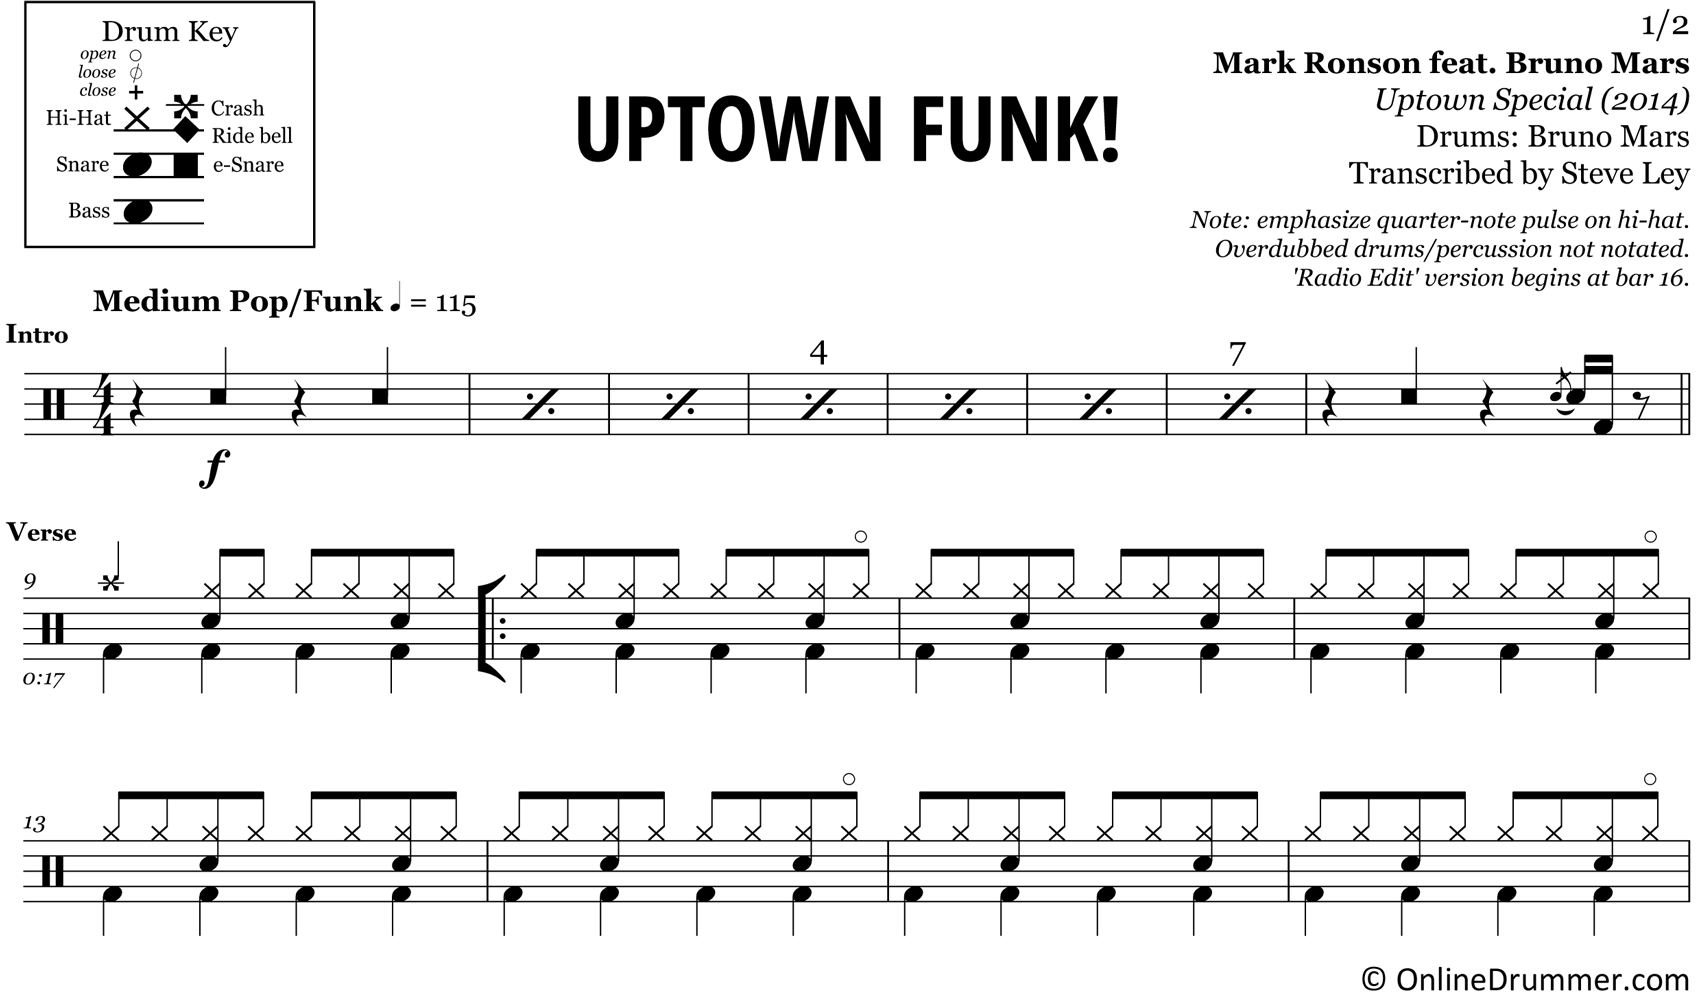 Uptown Funk - Bruno Mars & Mark Ronson - Drum Sheet Music